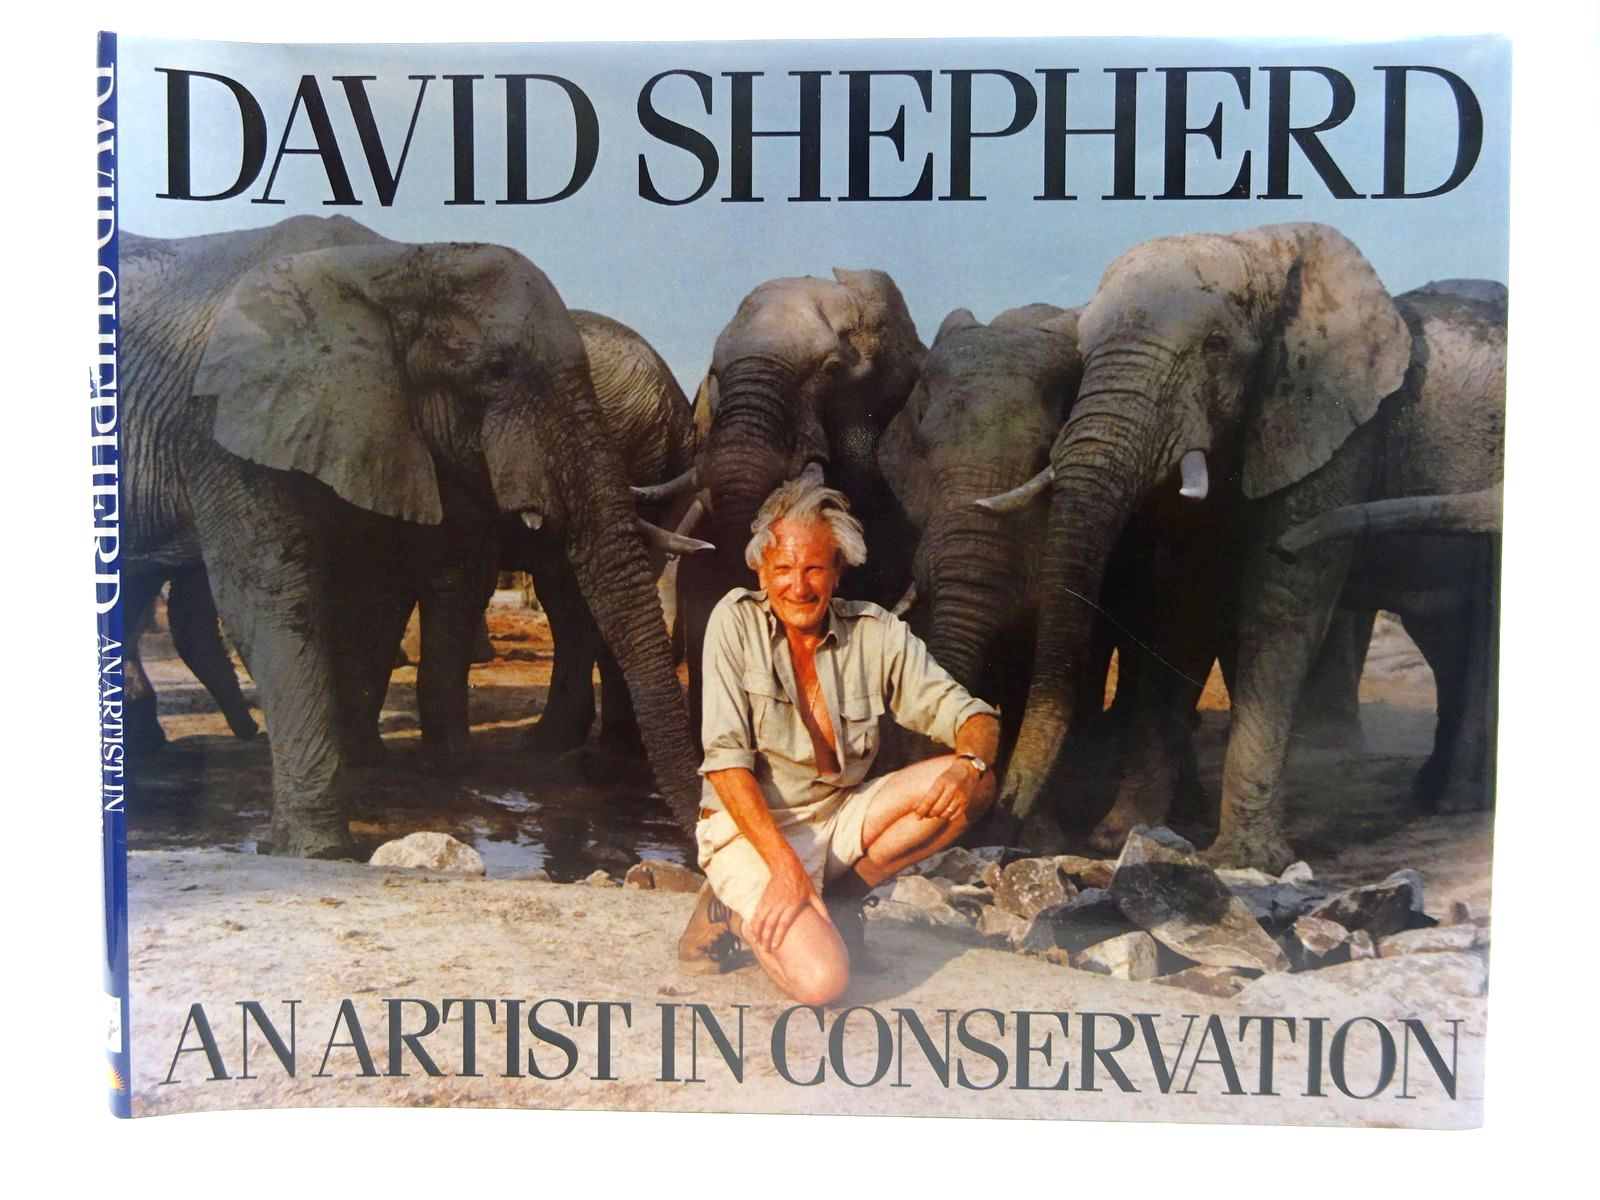 Photo of DAVID SHEPHERD AN ARTIST IN CONSERVATION written by Shepherd, David illustrated by Shepherd, David published by Rd & As Shepherd Partnership, Zodiac Publishing (STOCK CODE: 2127676)  for sale by Stella & Rose's Books